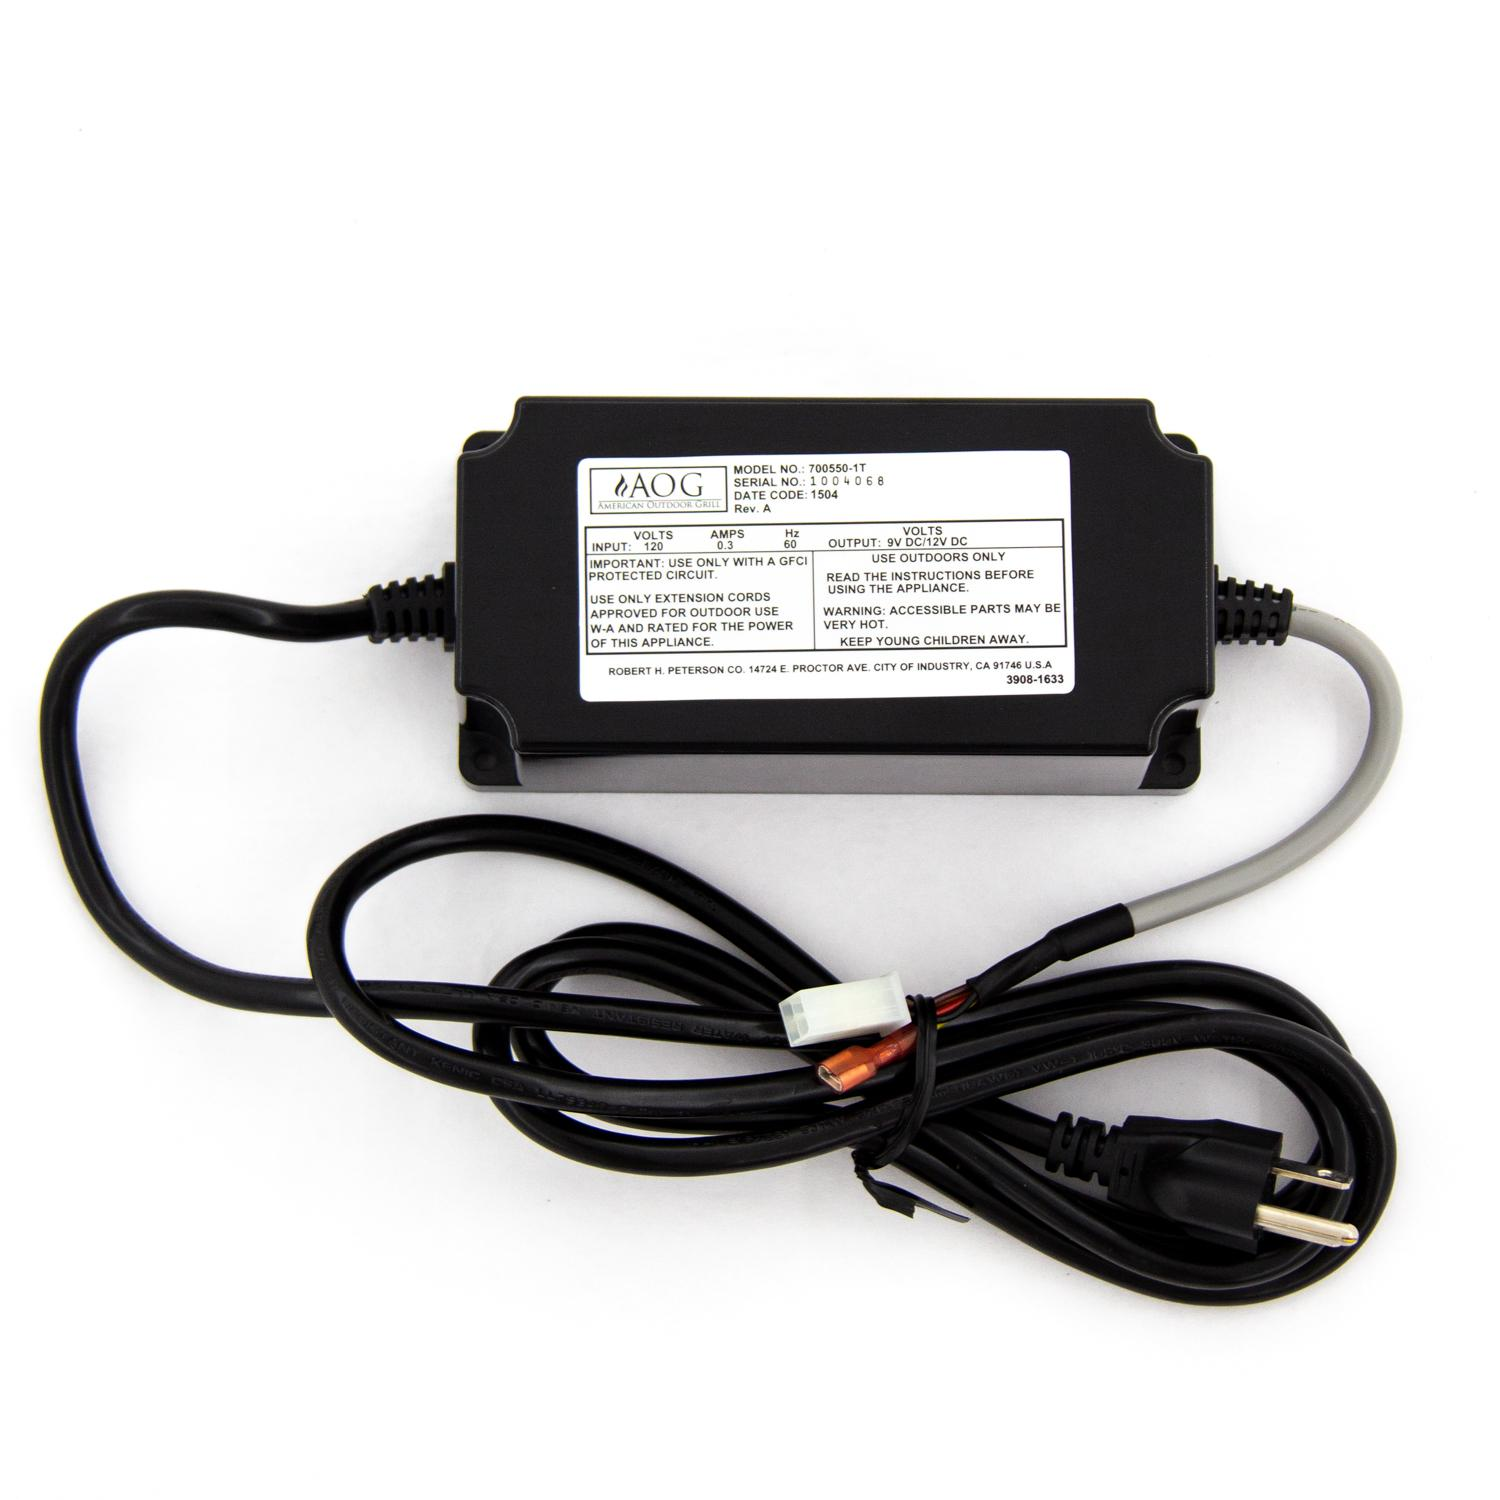 Aog American Outdoor Grill Power Supply For L Series Grills - 24-b-47